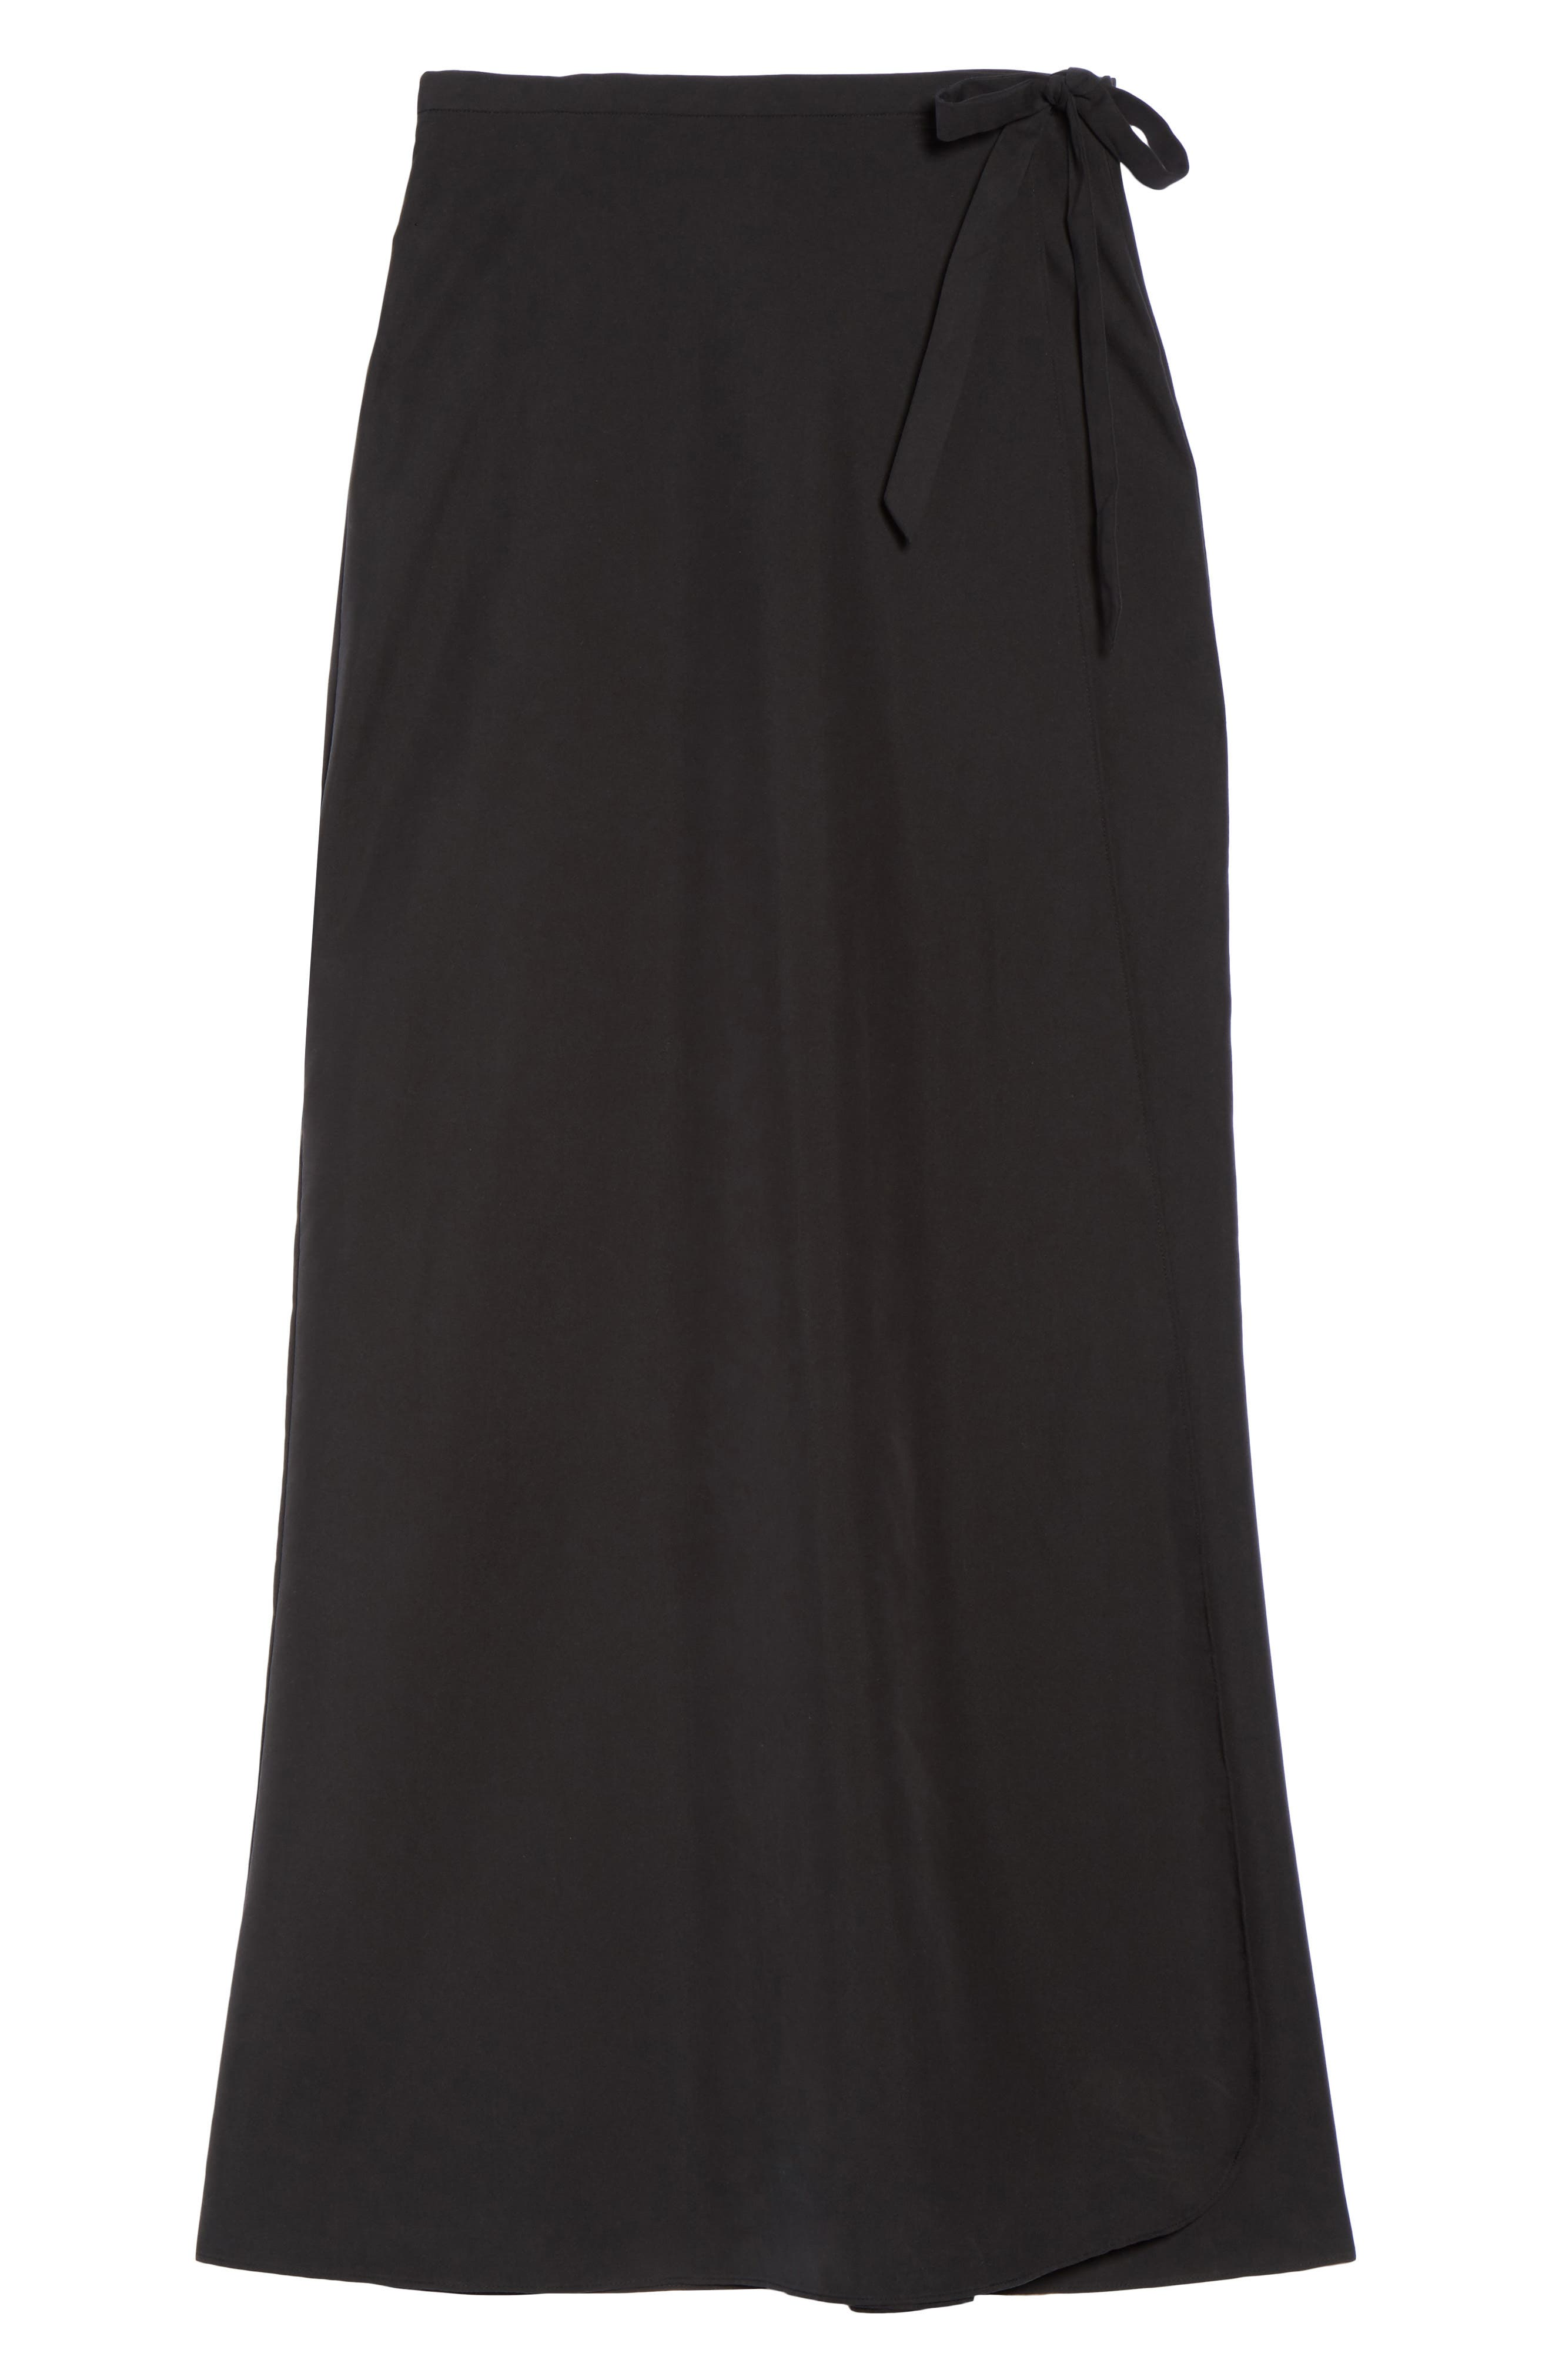 Lasting Impressions Cover-Up Maxi Skirt,                             Alternate thumbnail 6, color,                             001